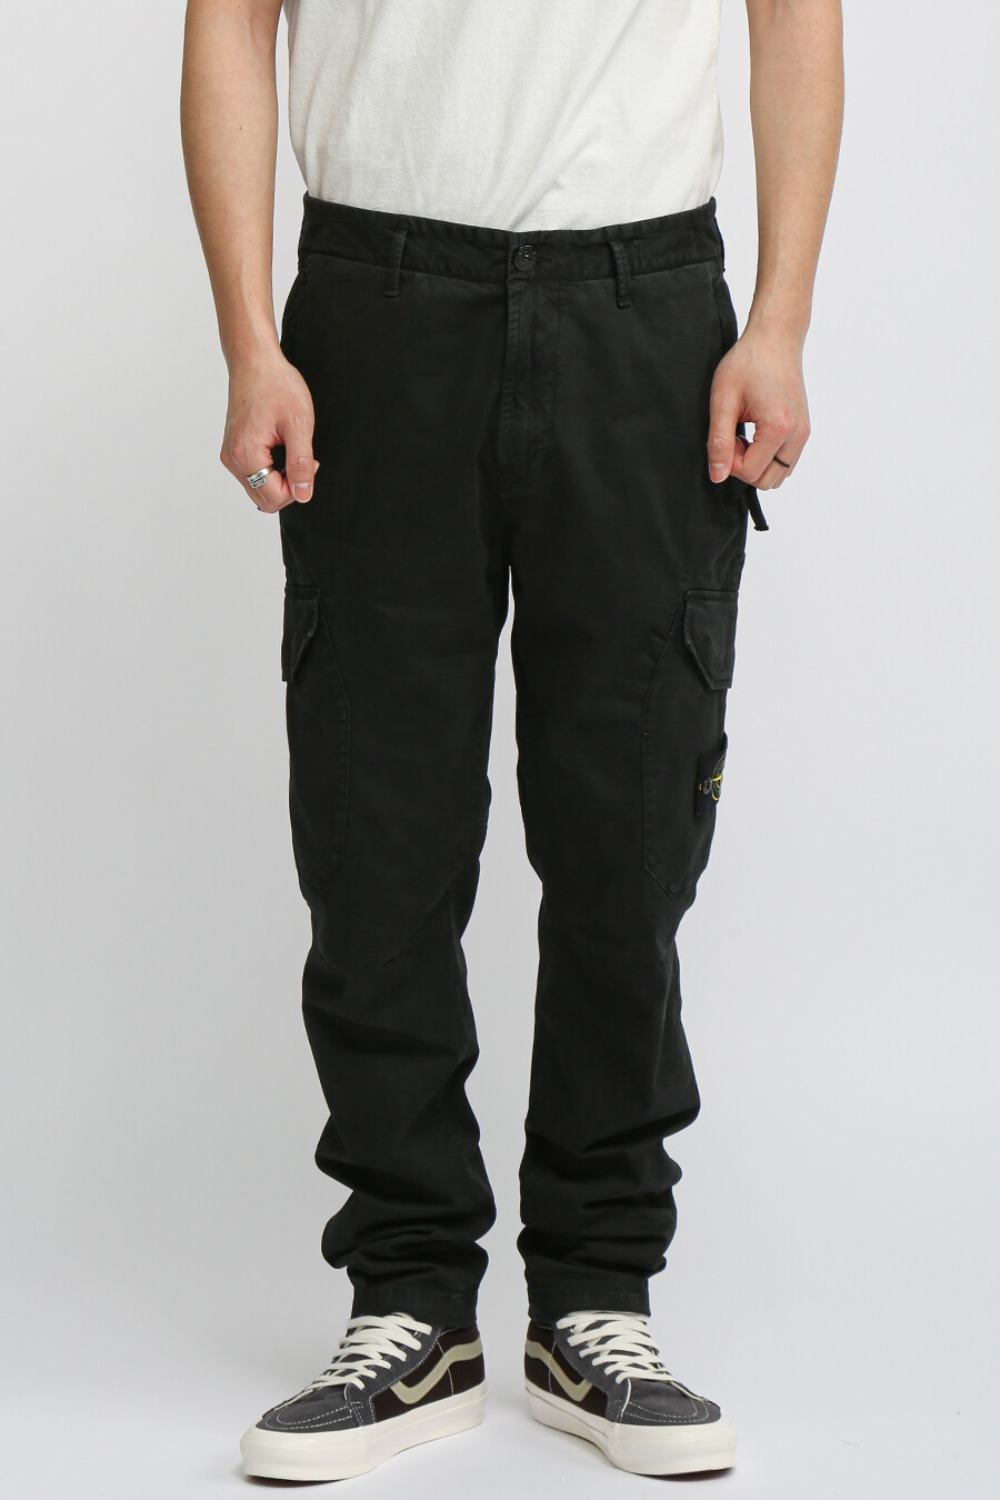 T.CO+OLD CARGO PANTS BLACK